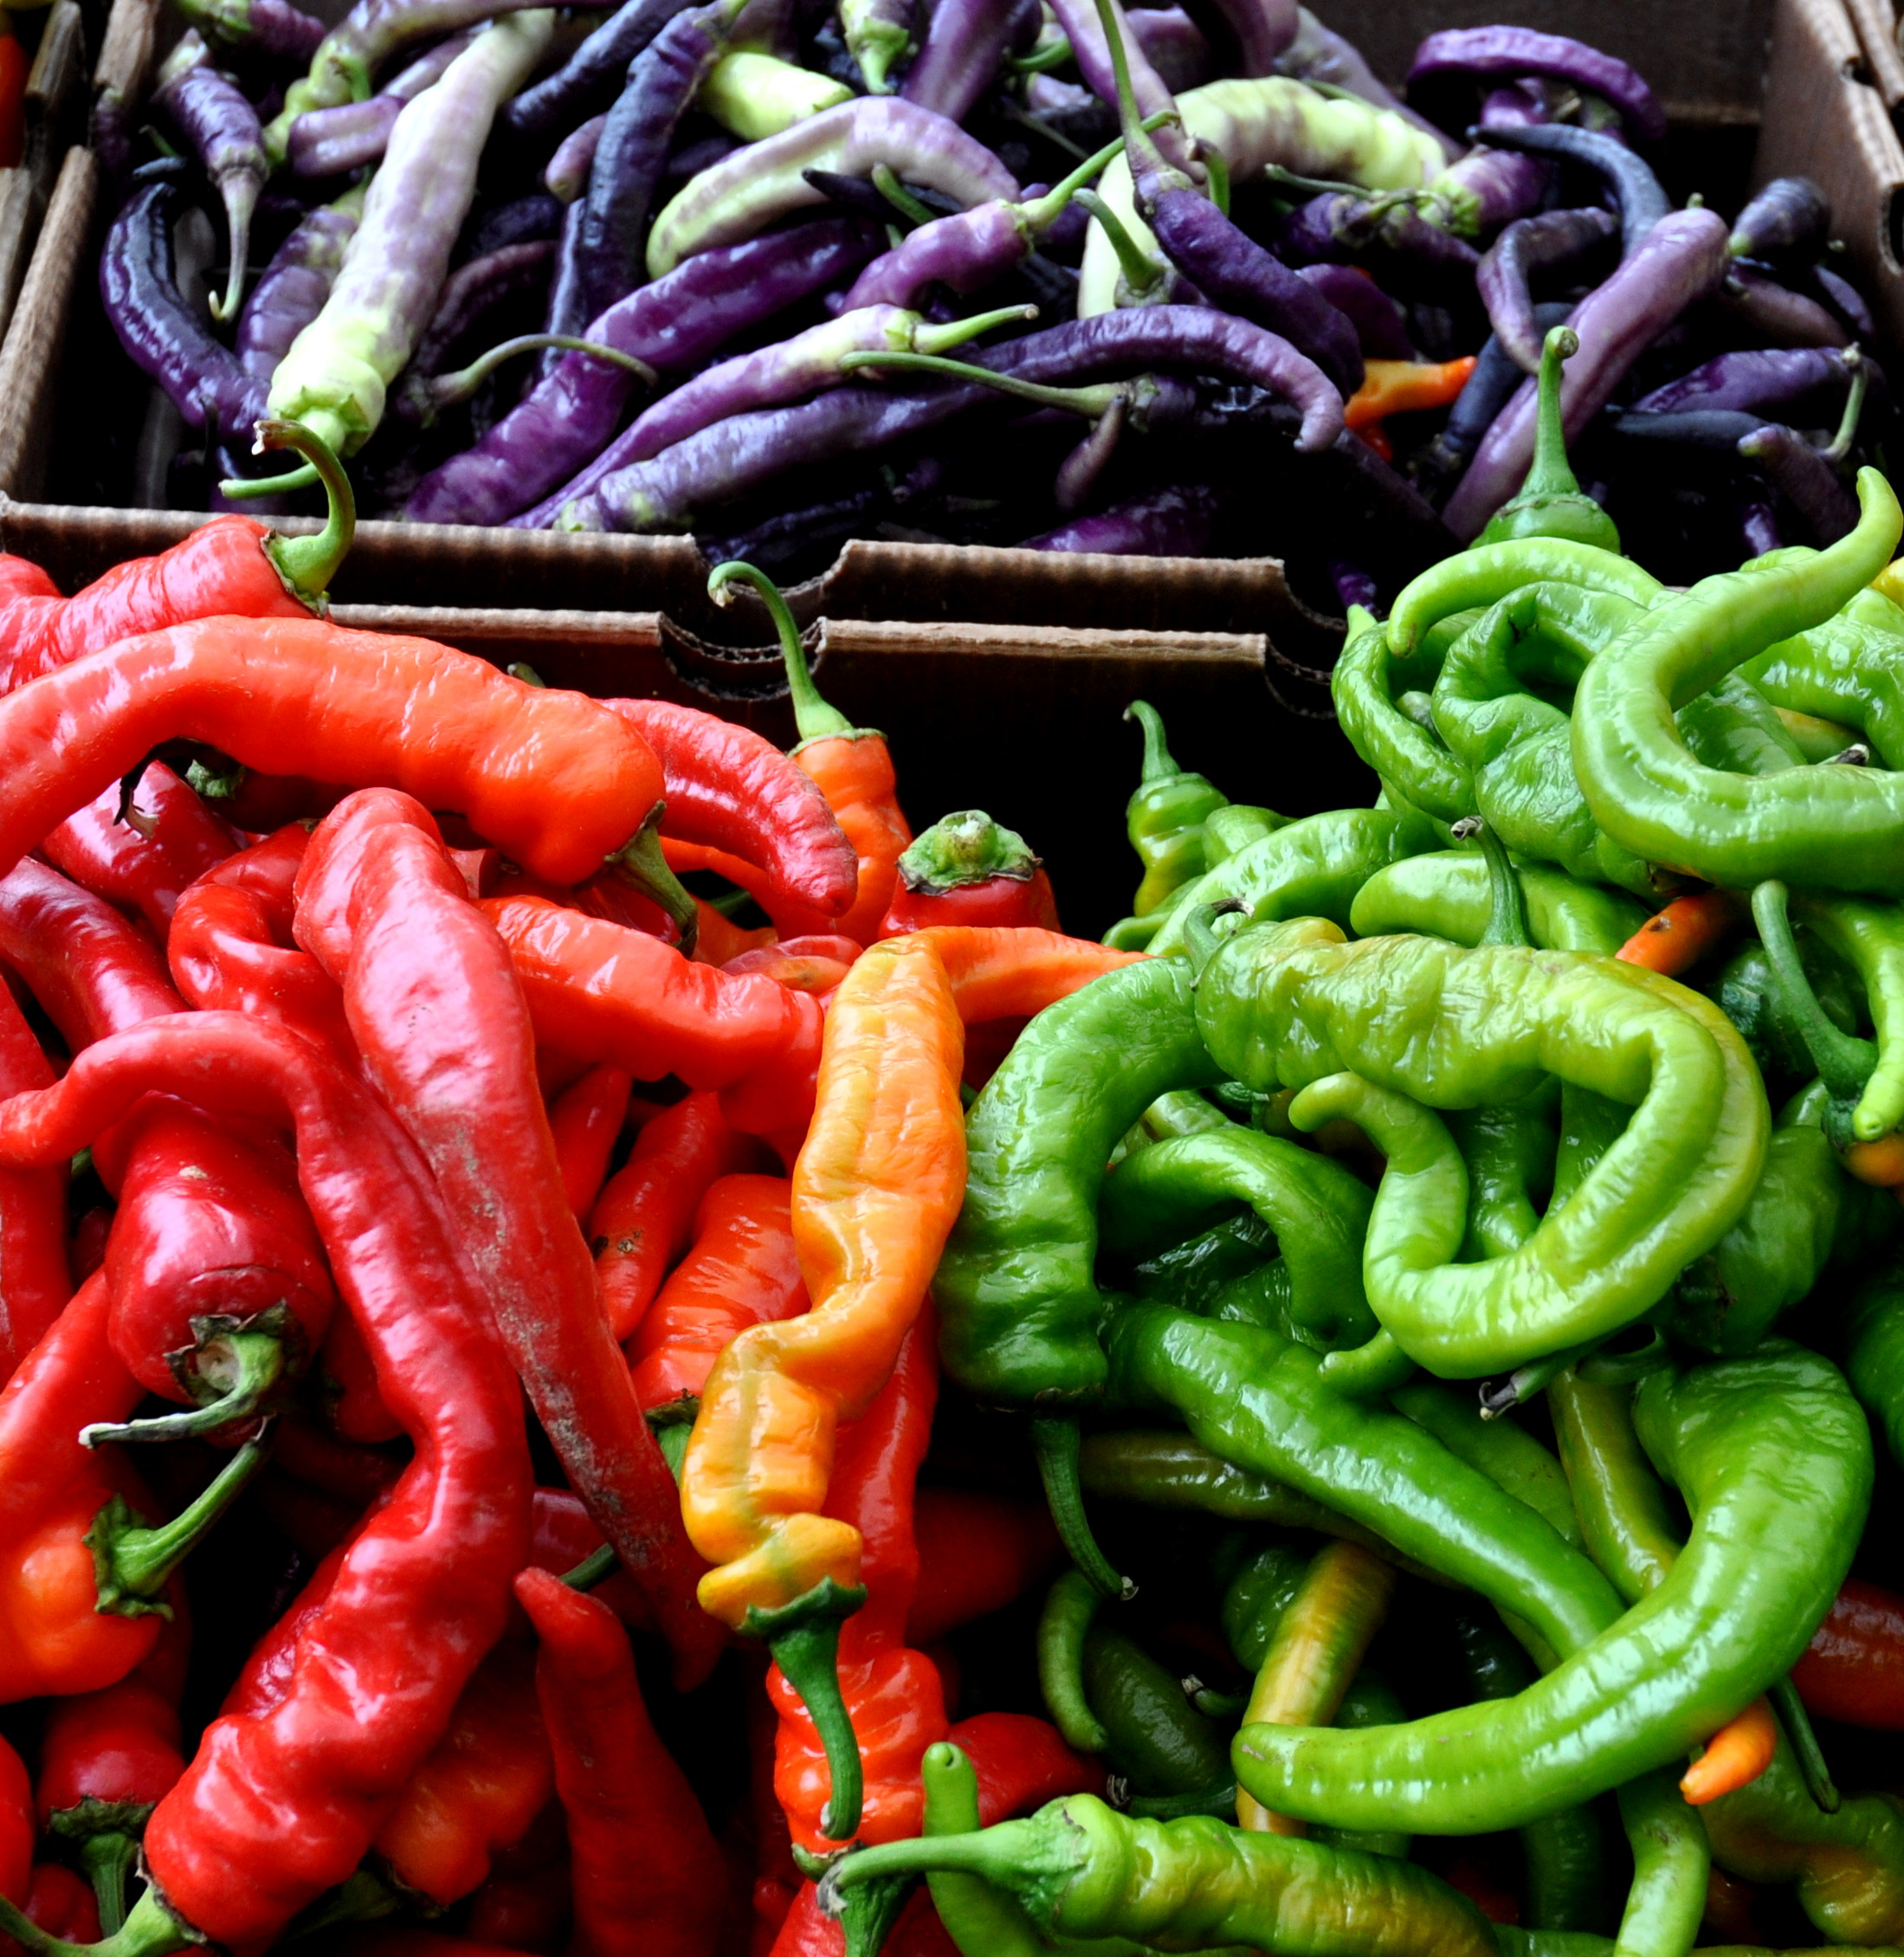 Goathorn chile peppers from Alvarez Organic Farms. Photo copyright 2013 by Zachary D. Lyons.